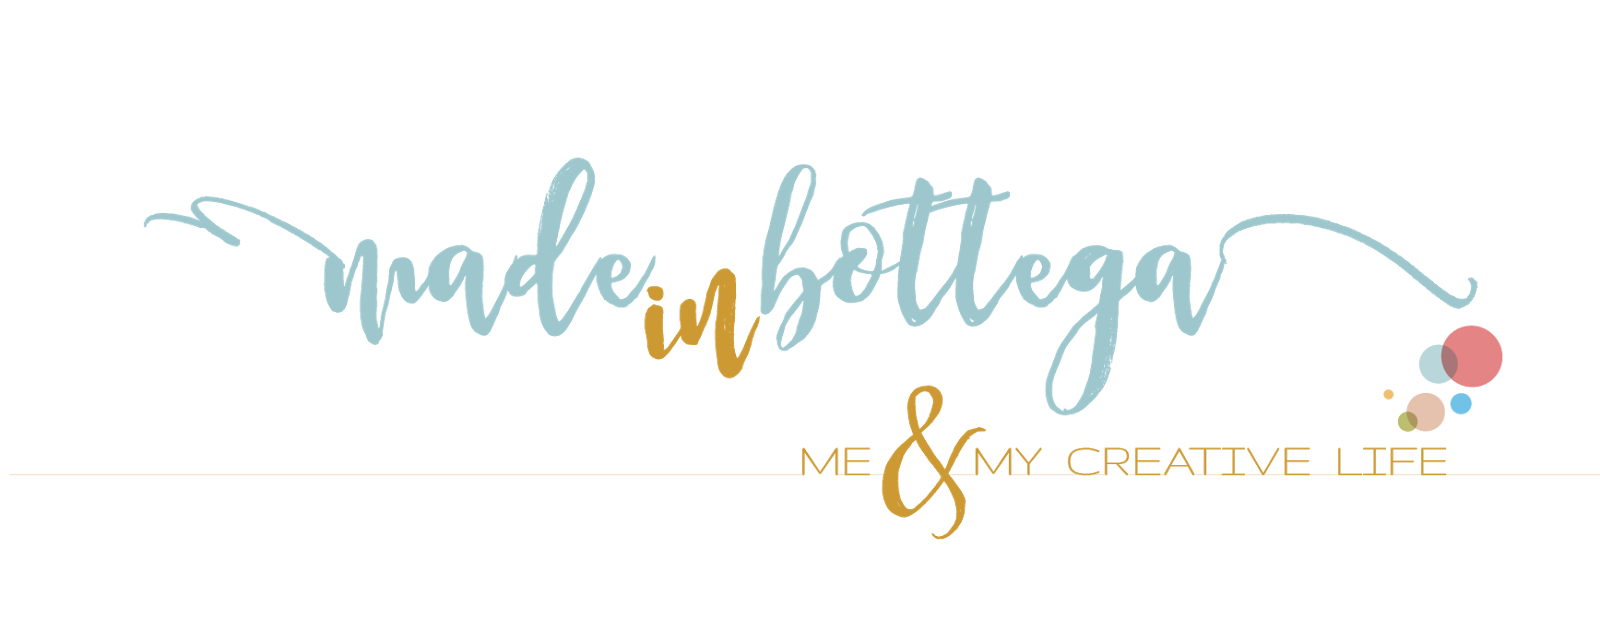 made in bottega - blog creativo